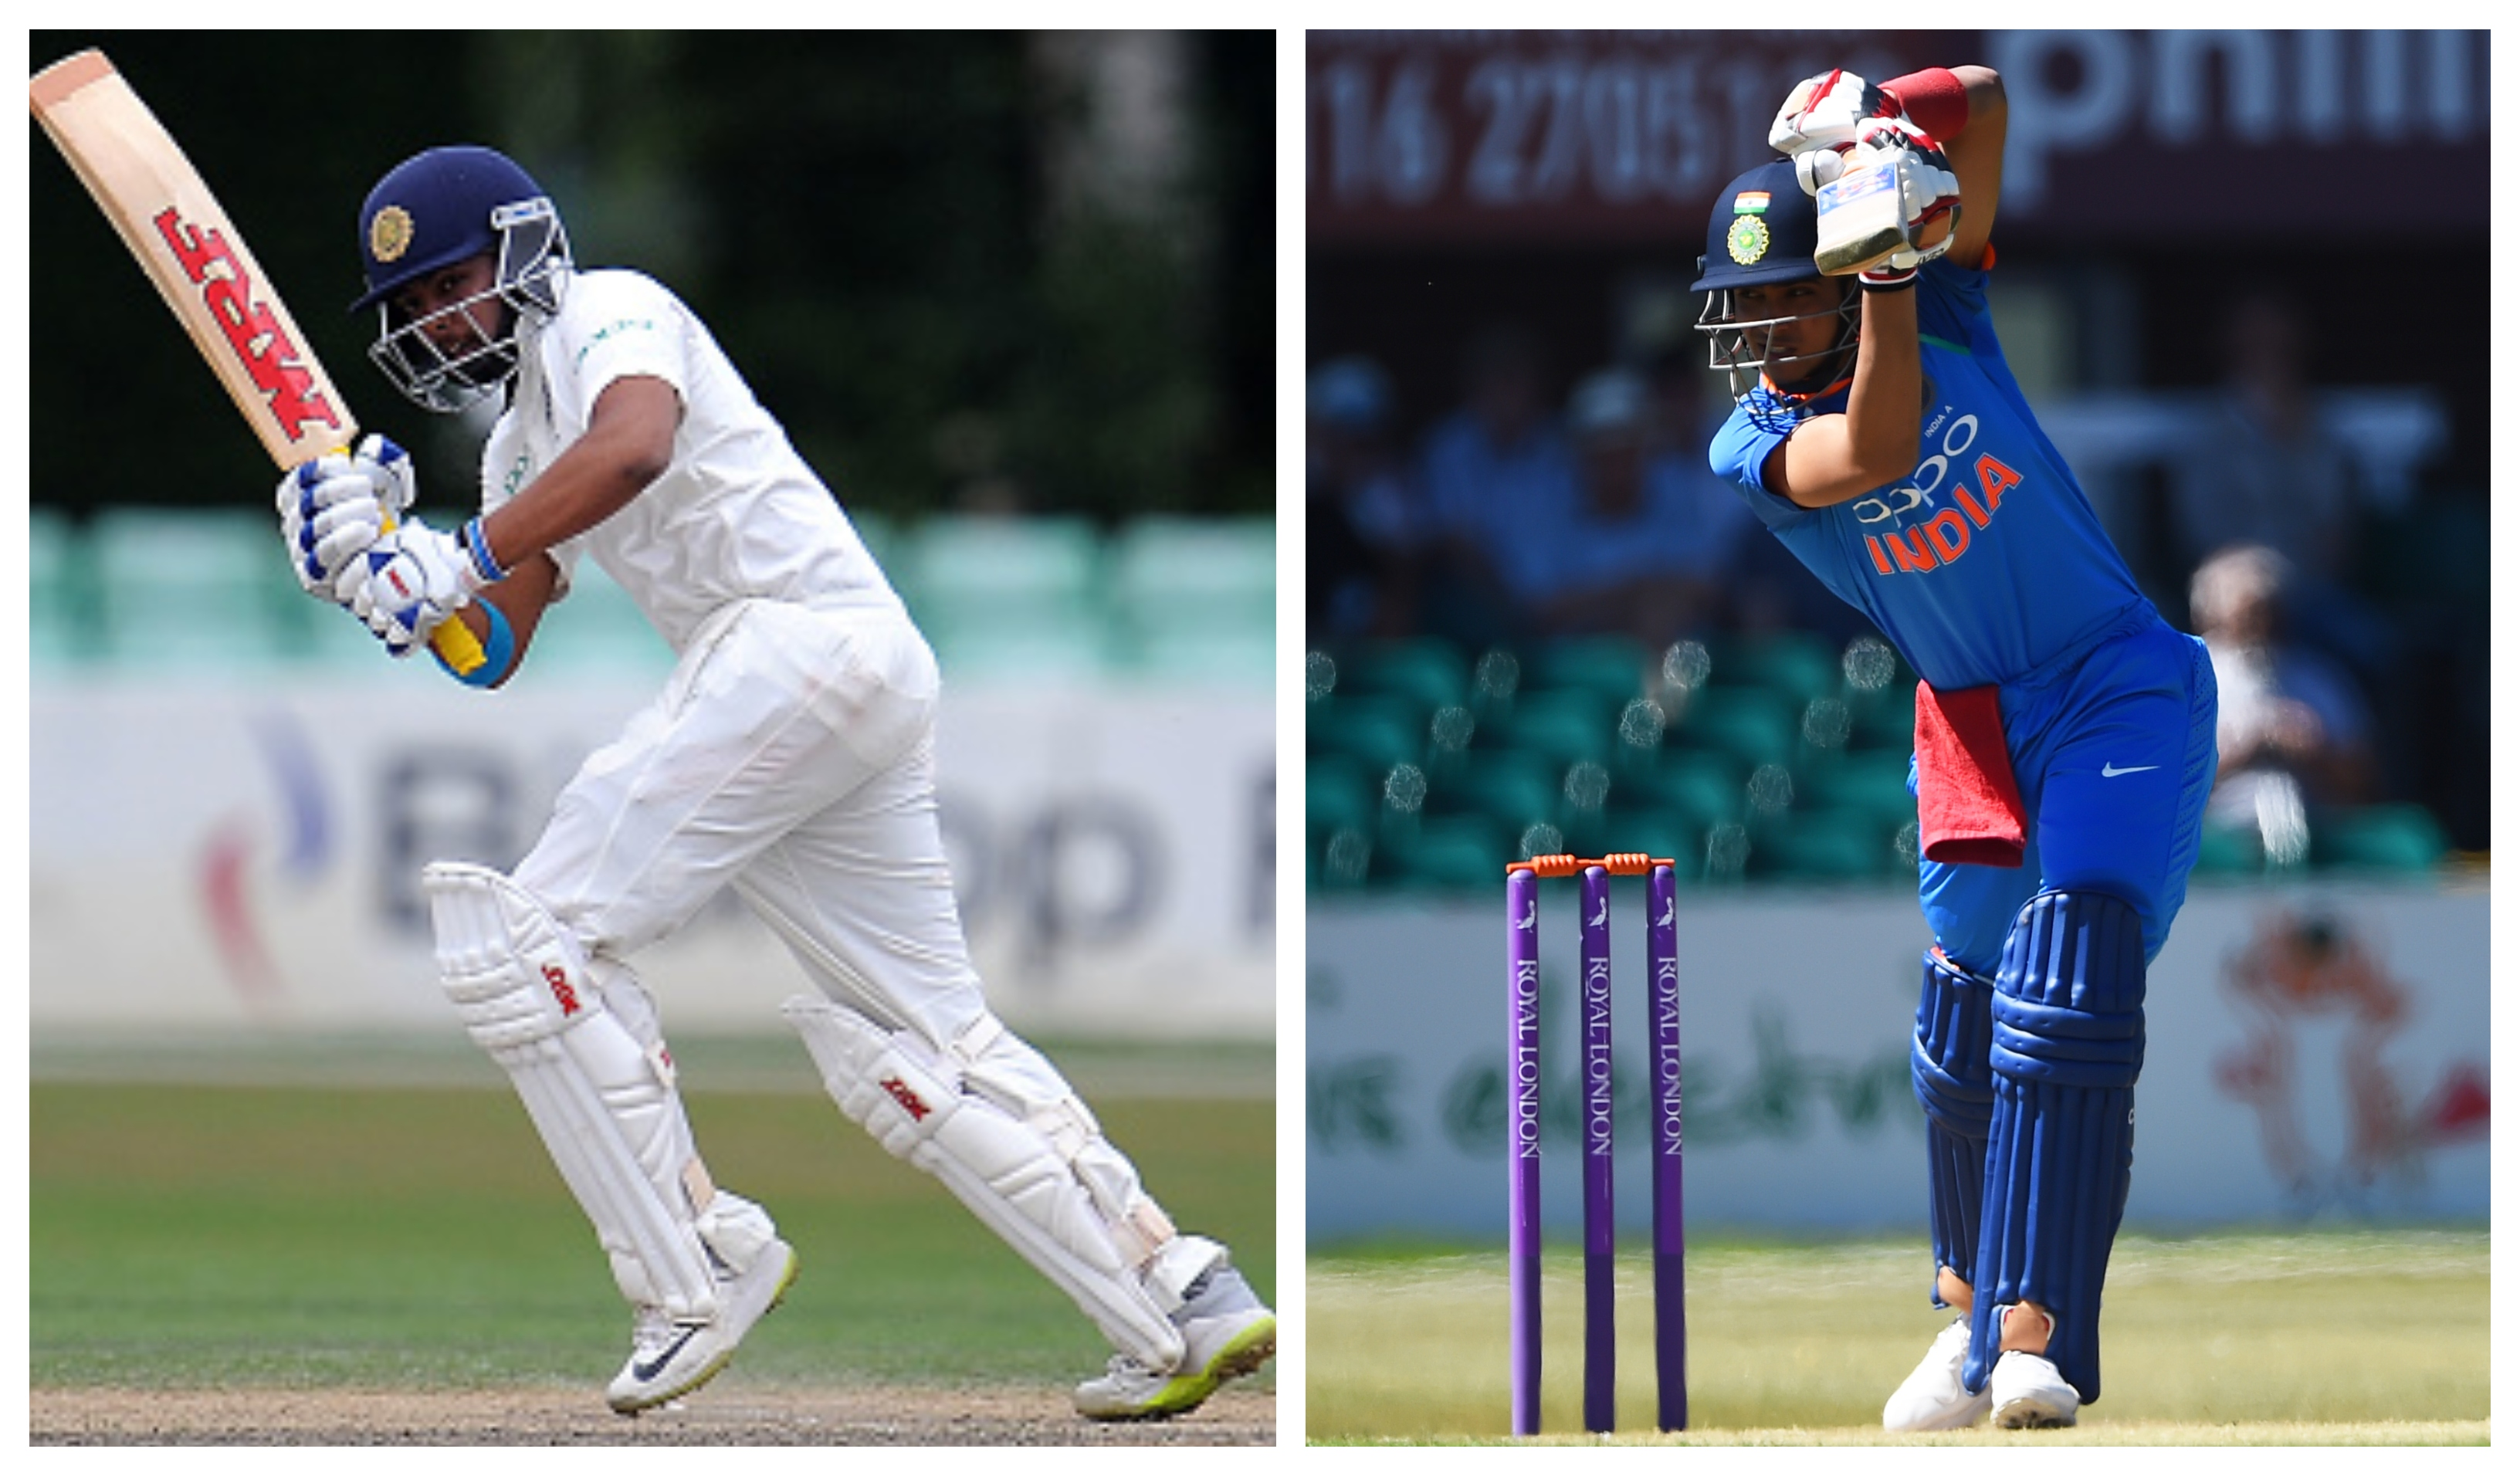 Prithvi Shaw and Shubhman Gill are the future of Indian cricket